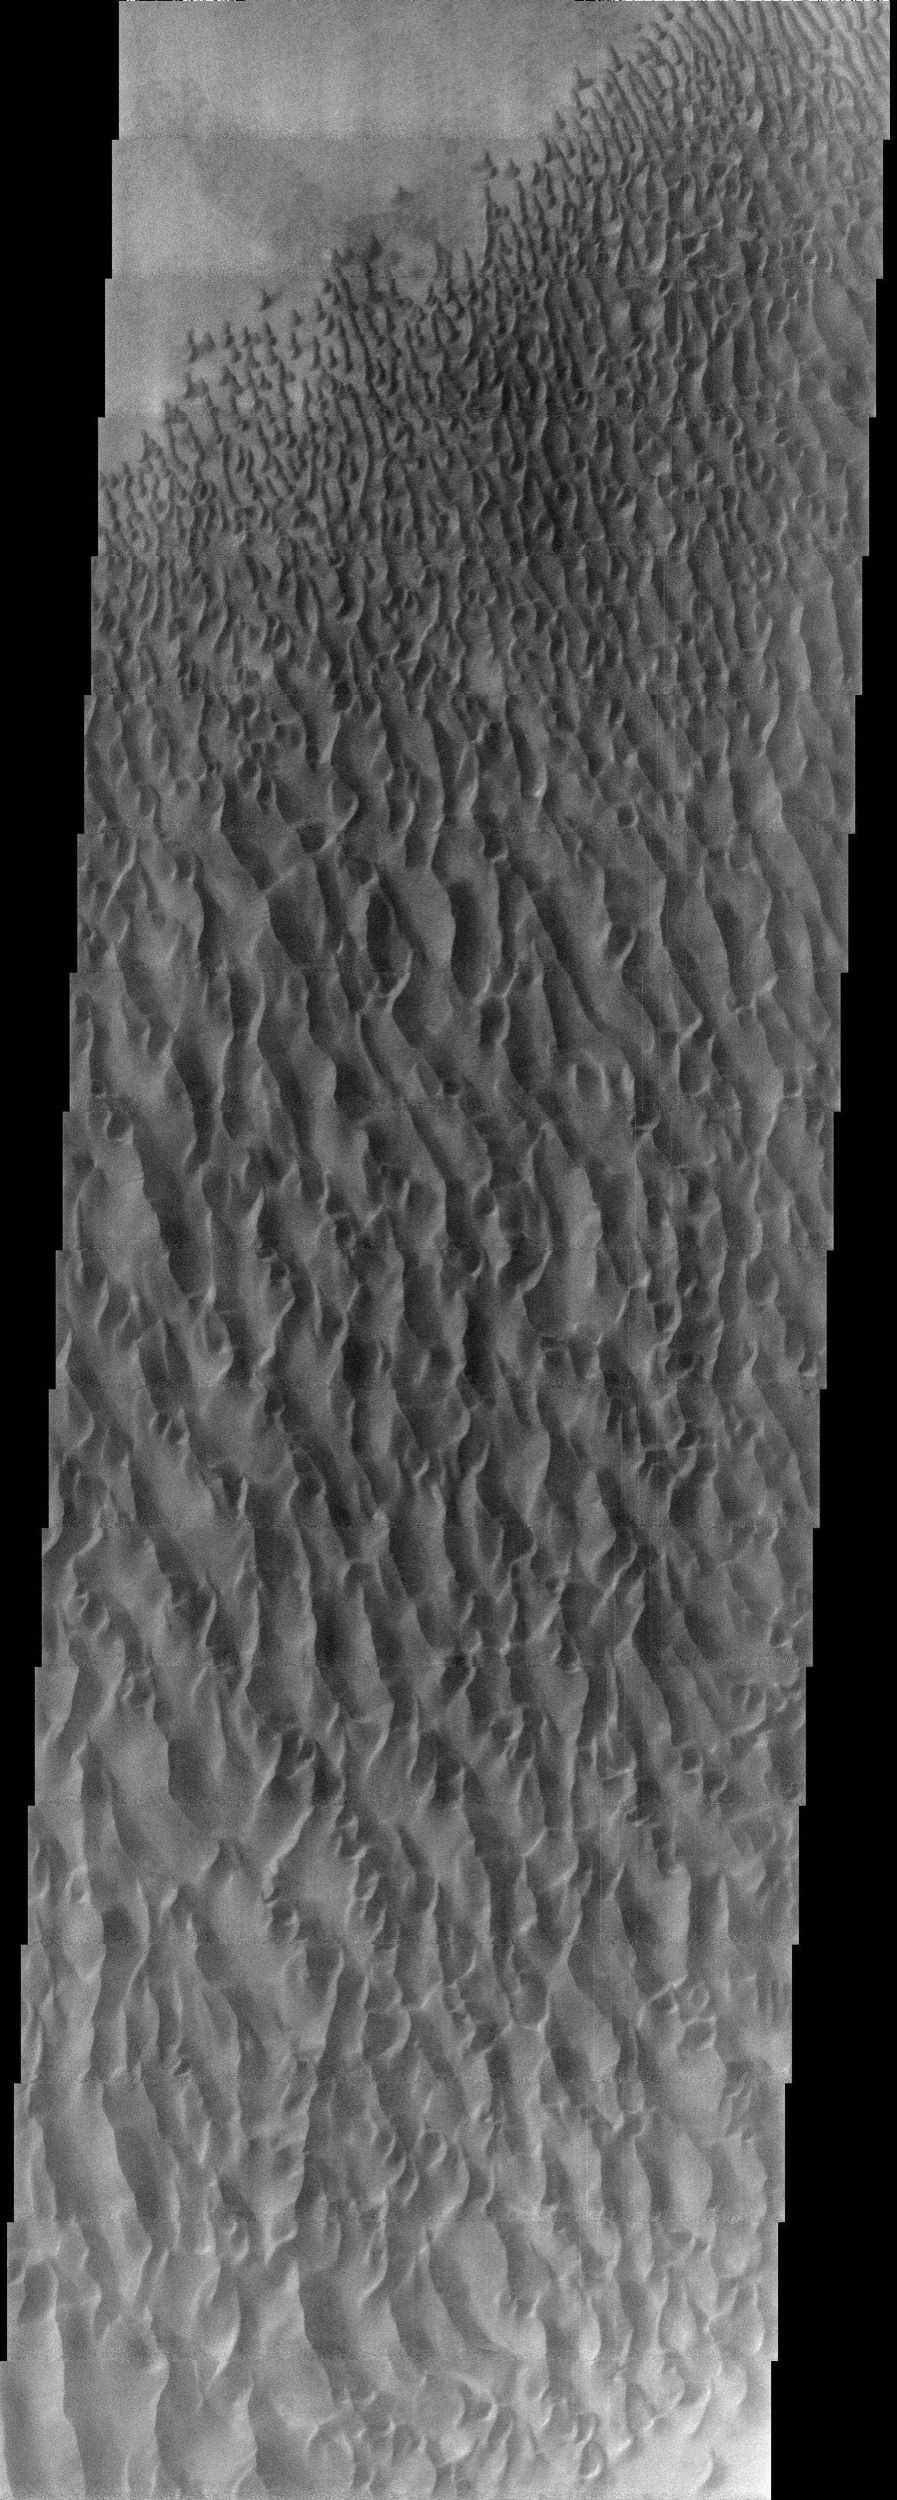 This image from NASA's Mars Odyssey spacecraft displays sand dunes within Proctor Crater. These dunes are composed of basaltic sand that has collected in the bottom of the crater.